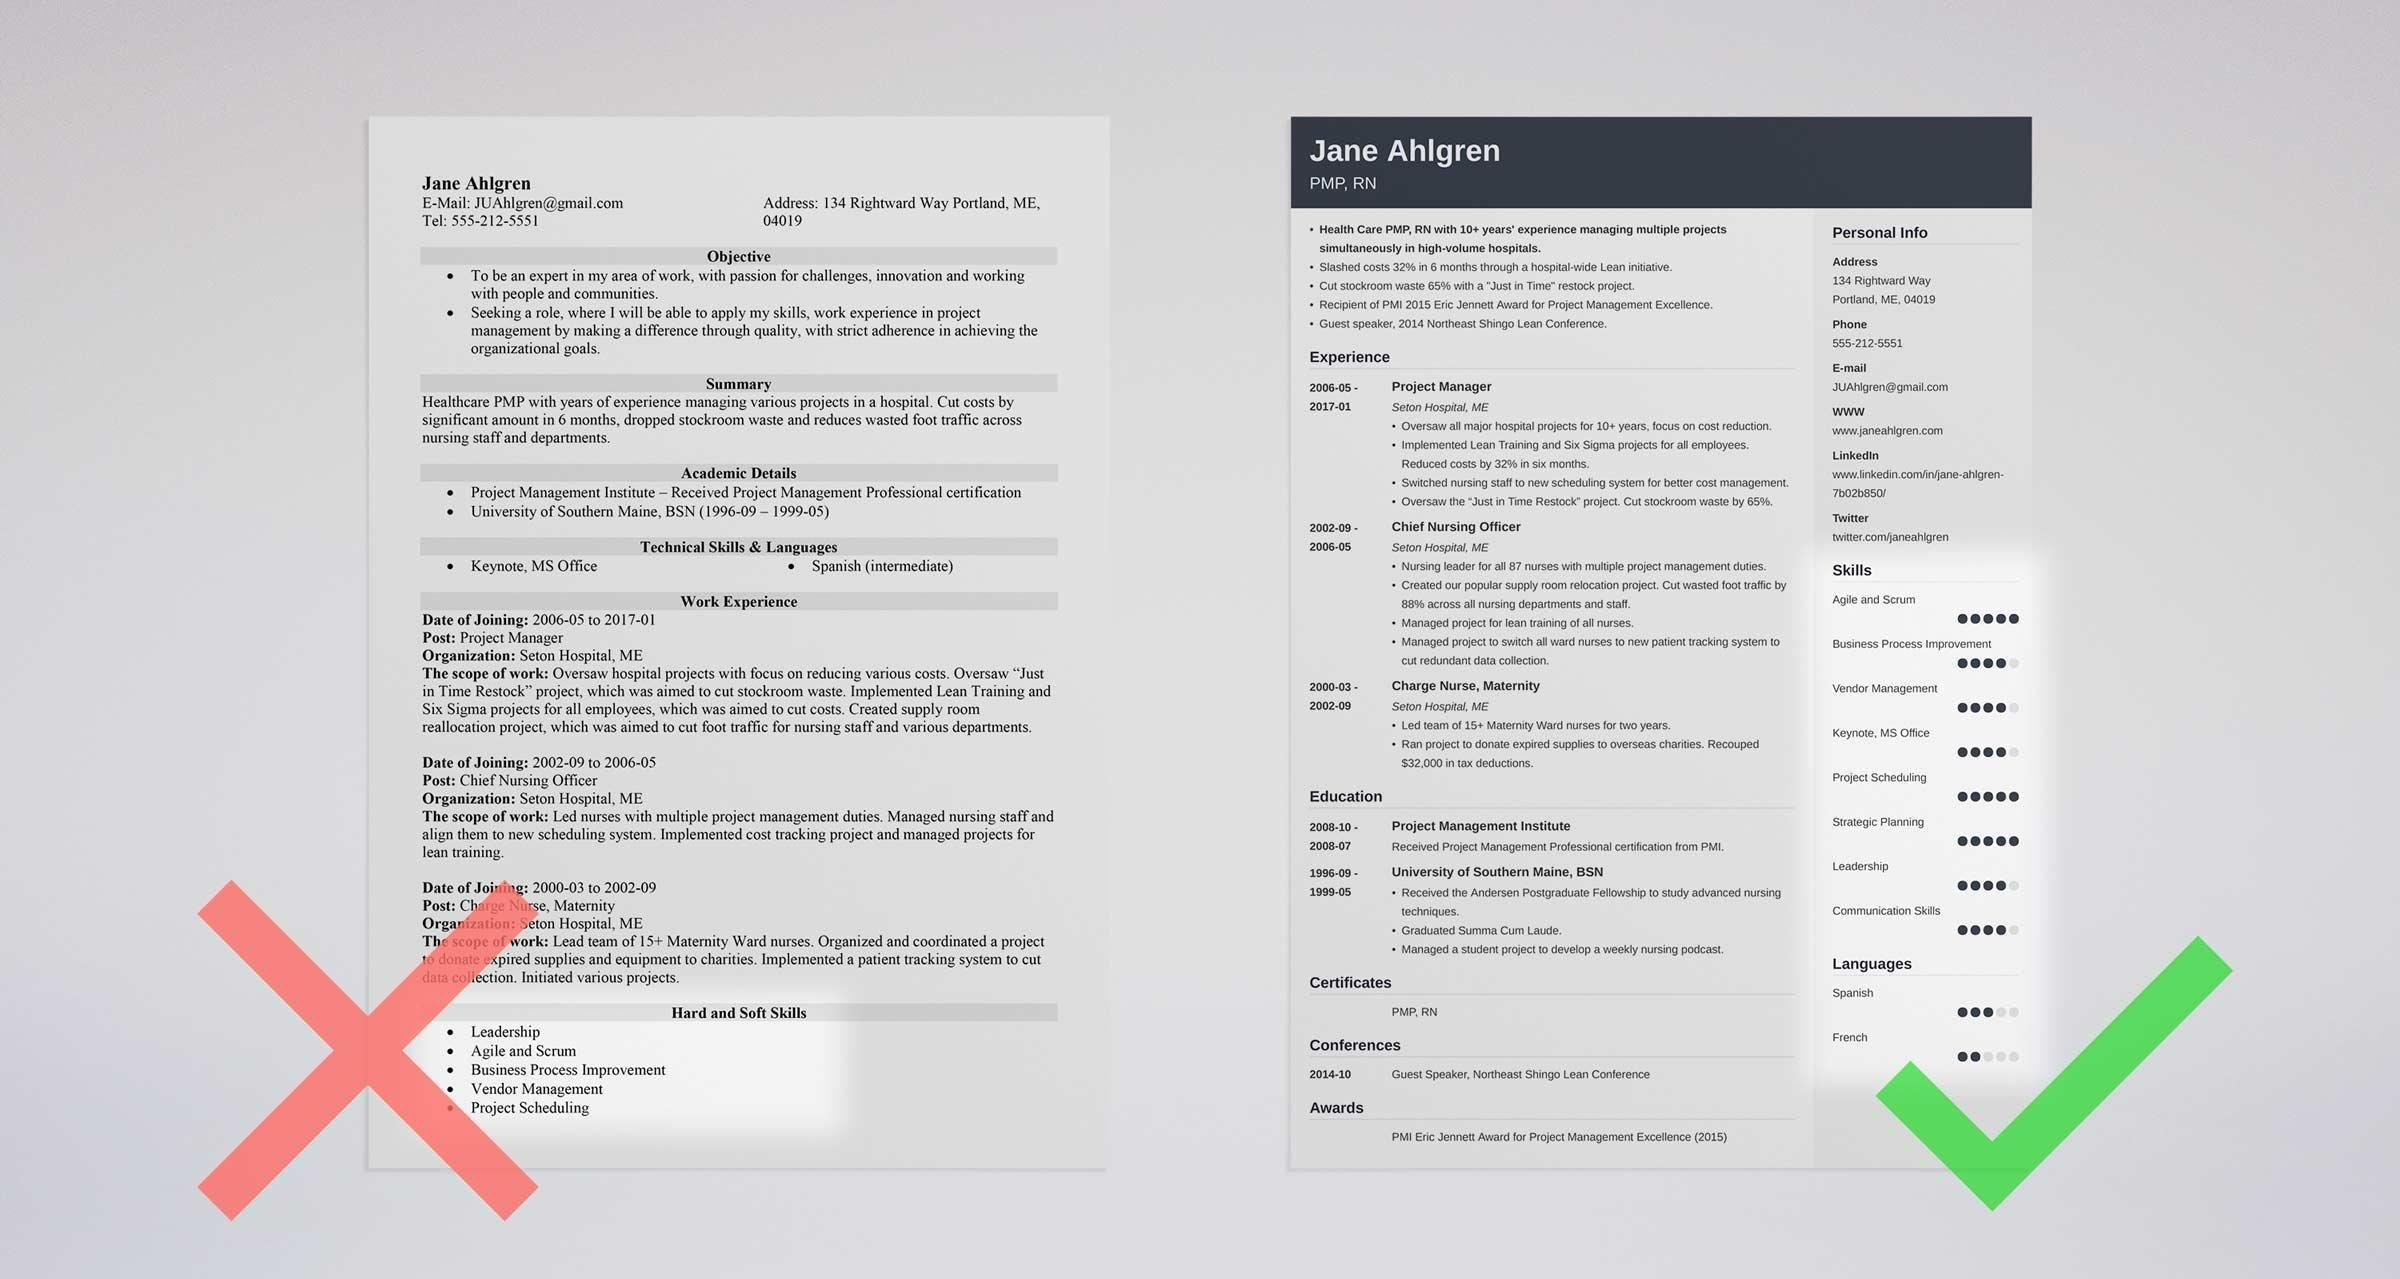 What Should I Write In My Resume 99 Key Skills For A Resume Best List Of Examples For All Types Of